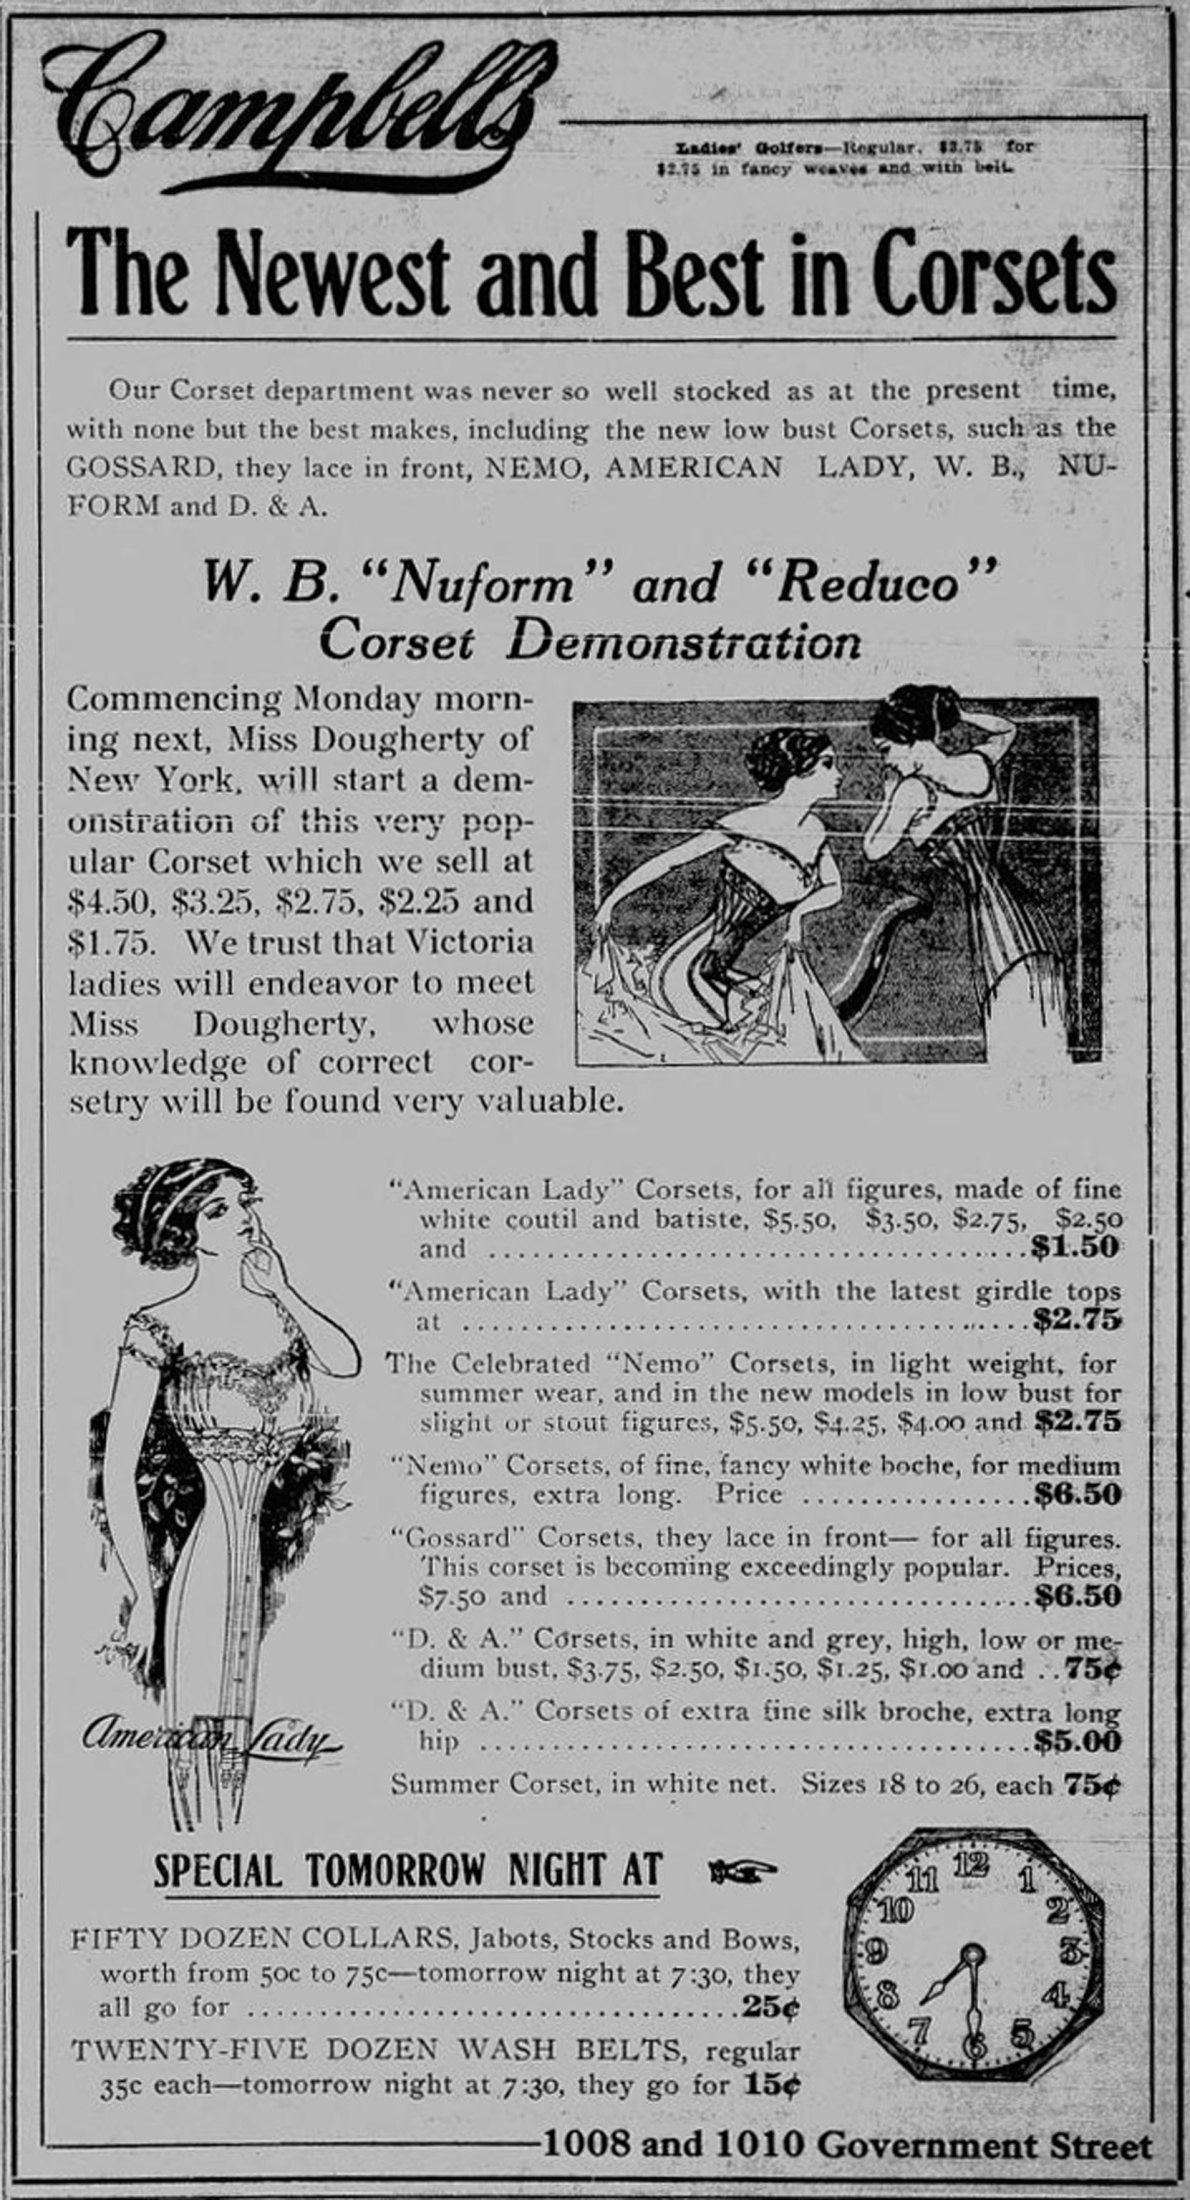 1911 advertisement for corsets by Angus Campbell, a women's clothing store located at 1010 Government Street for several decades. (Victoria Online Sightseeing Tours collection)